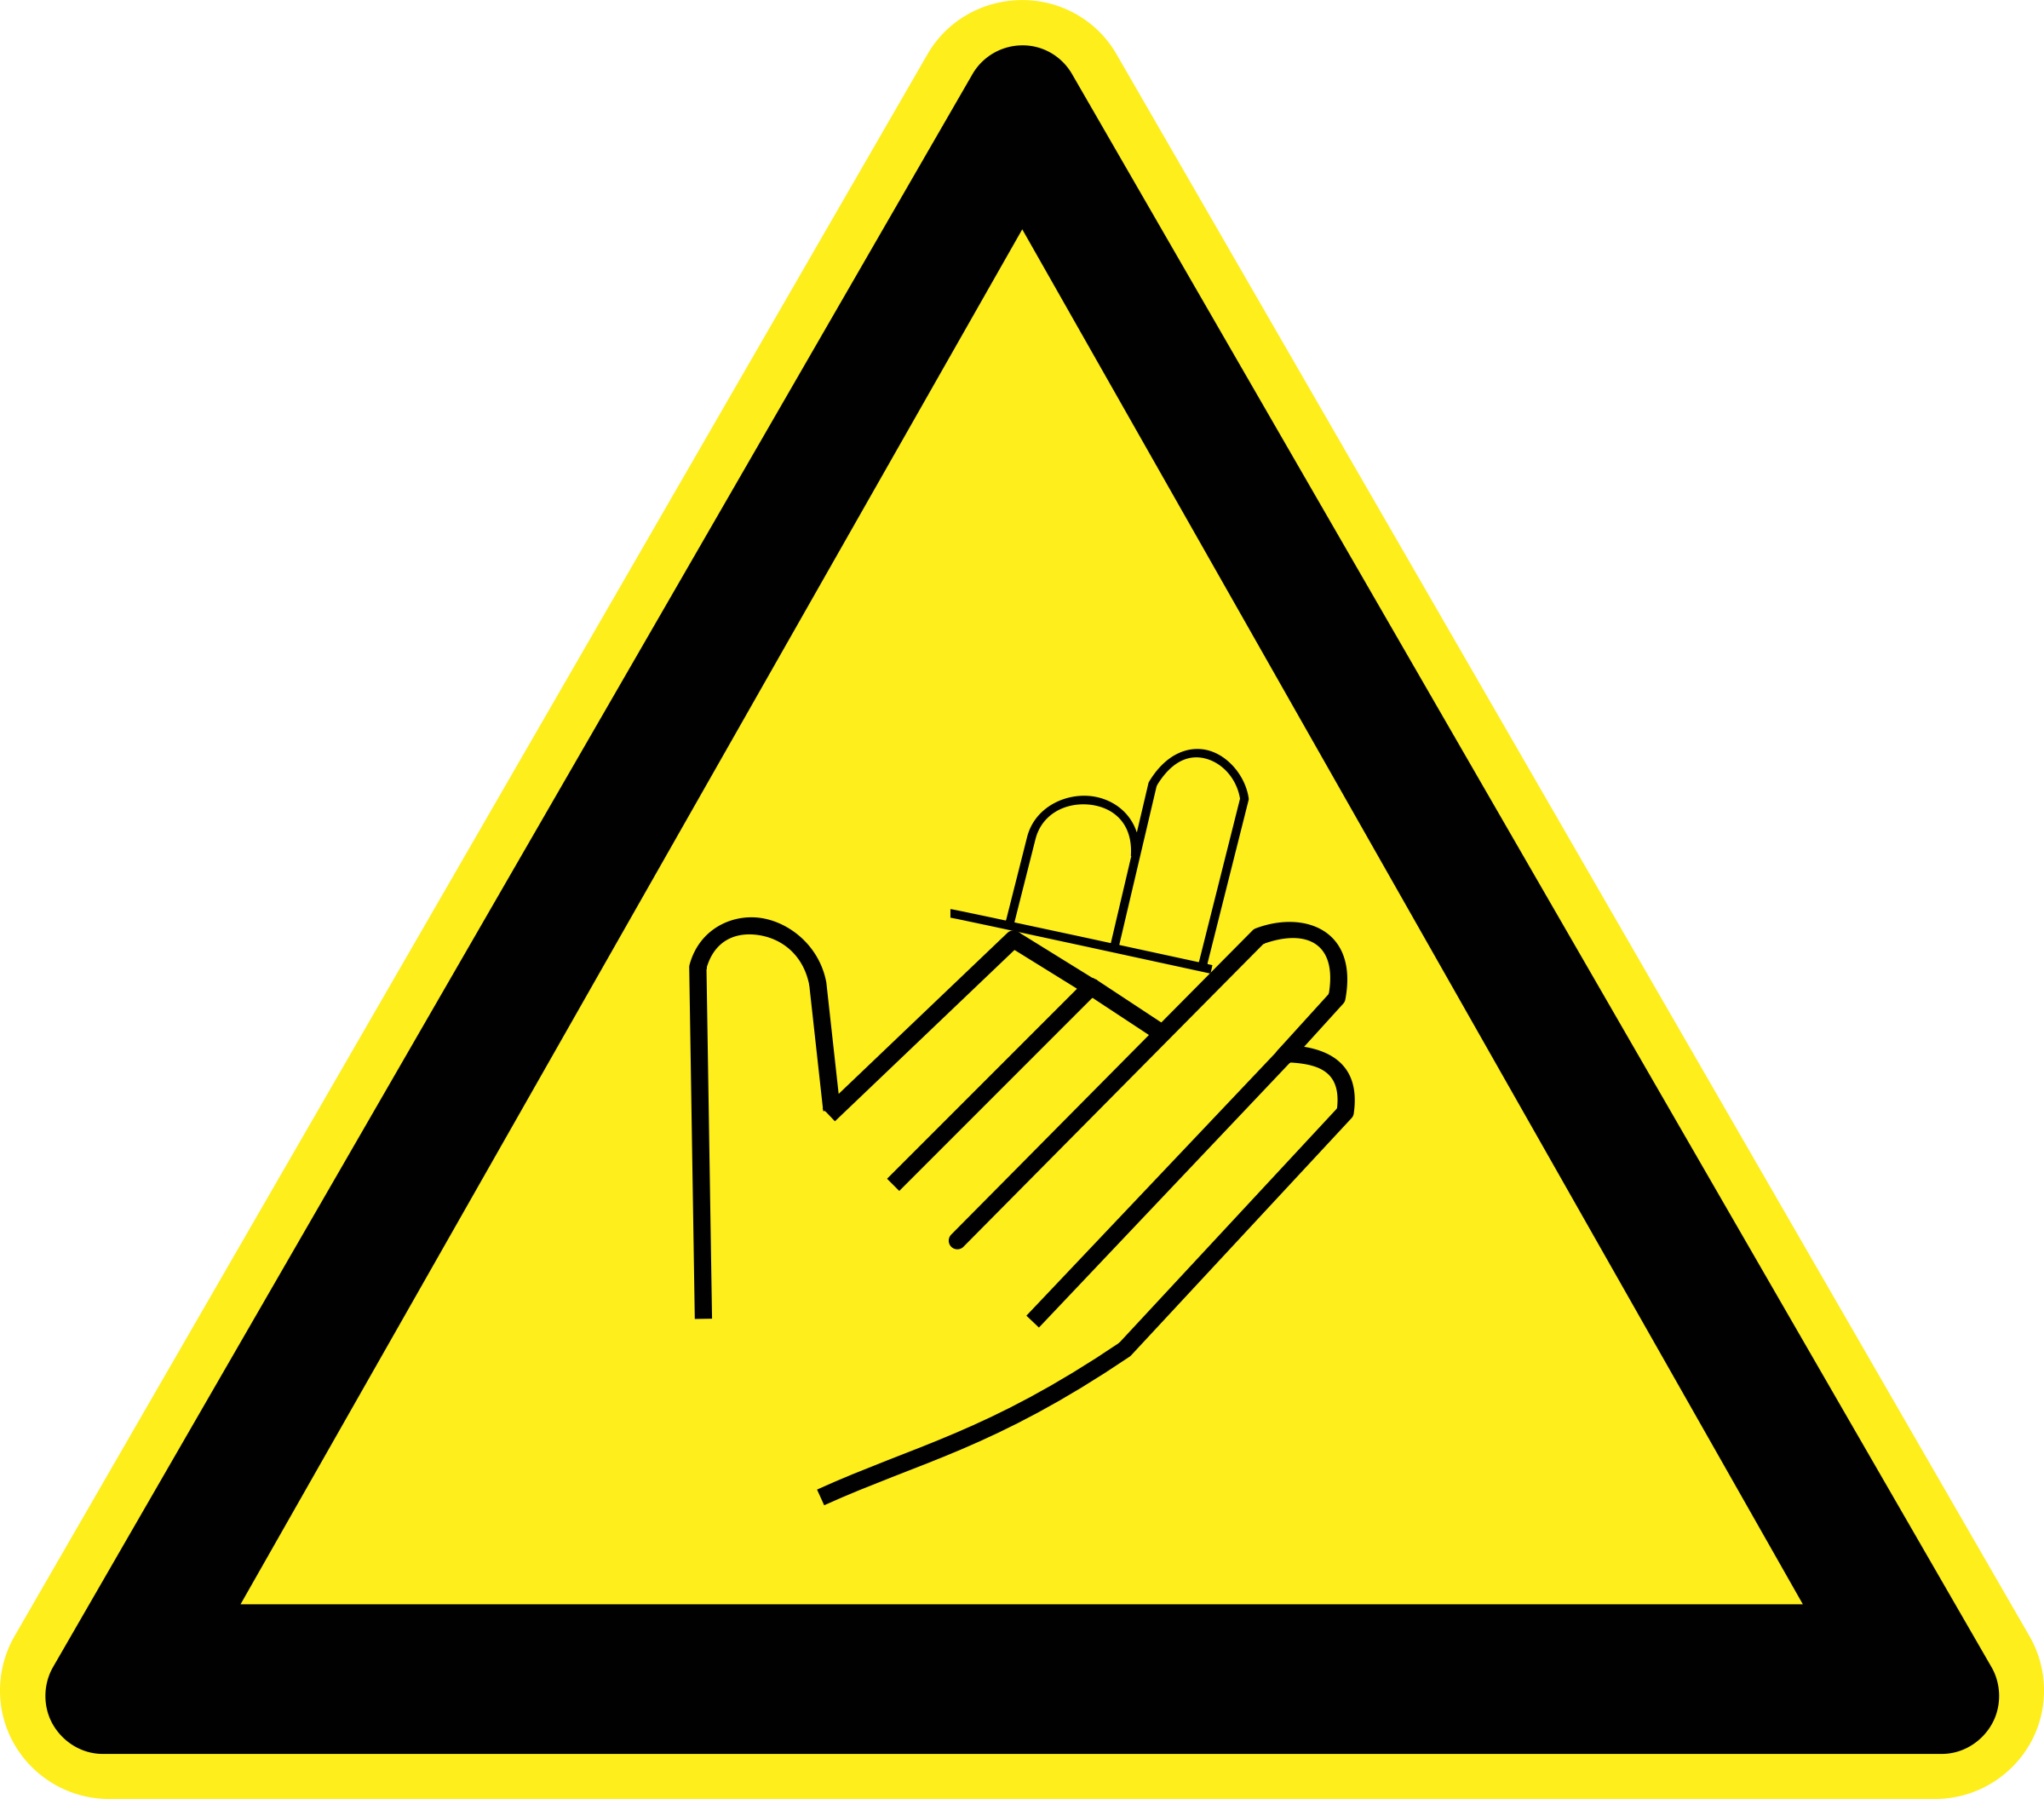 Hand/Finger Loss Warning Sign by h0us3s